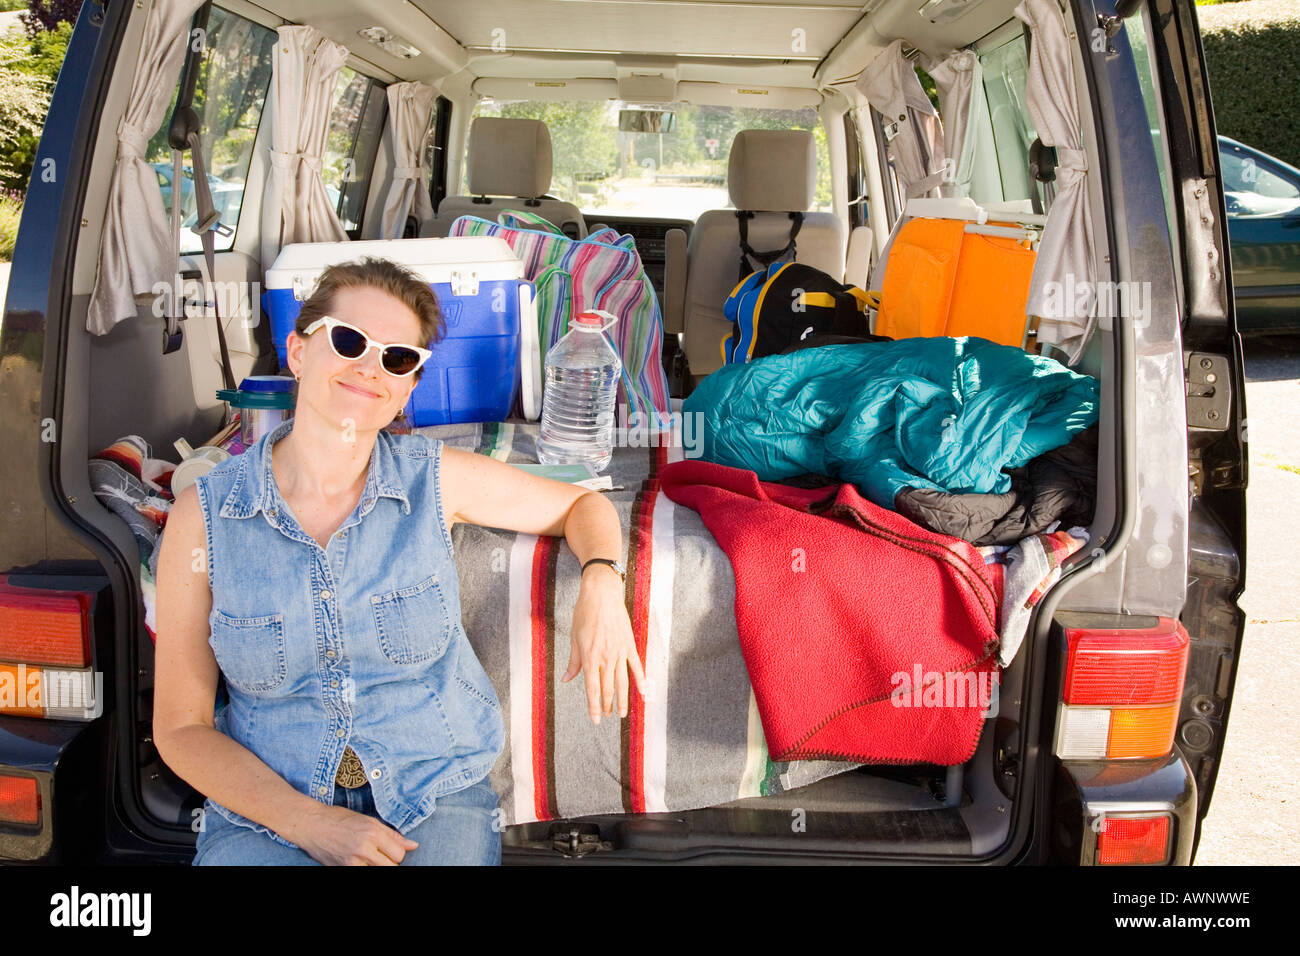 Woman sitting in trunk of car with camping gear Stock Photo